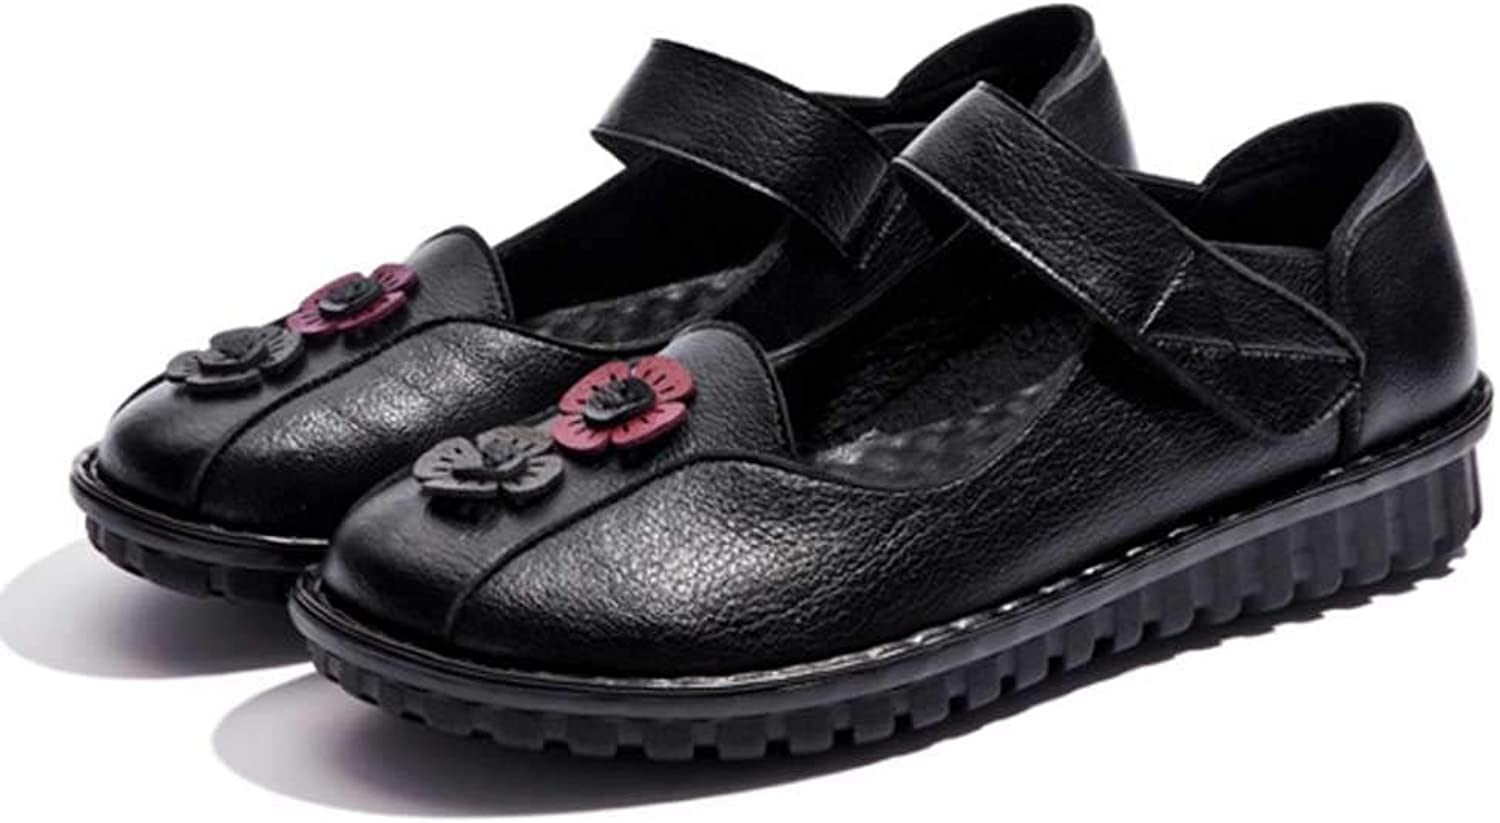 Luobote Women Mary Jane Flats Genuine Leather Vintage Flower Casual Walking Moccasins